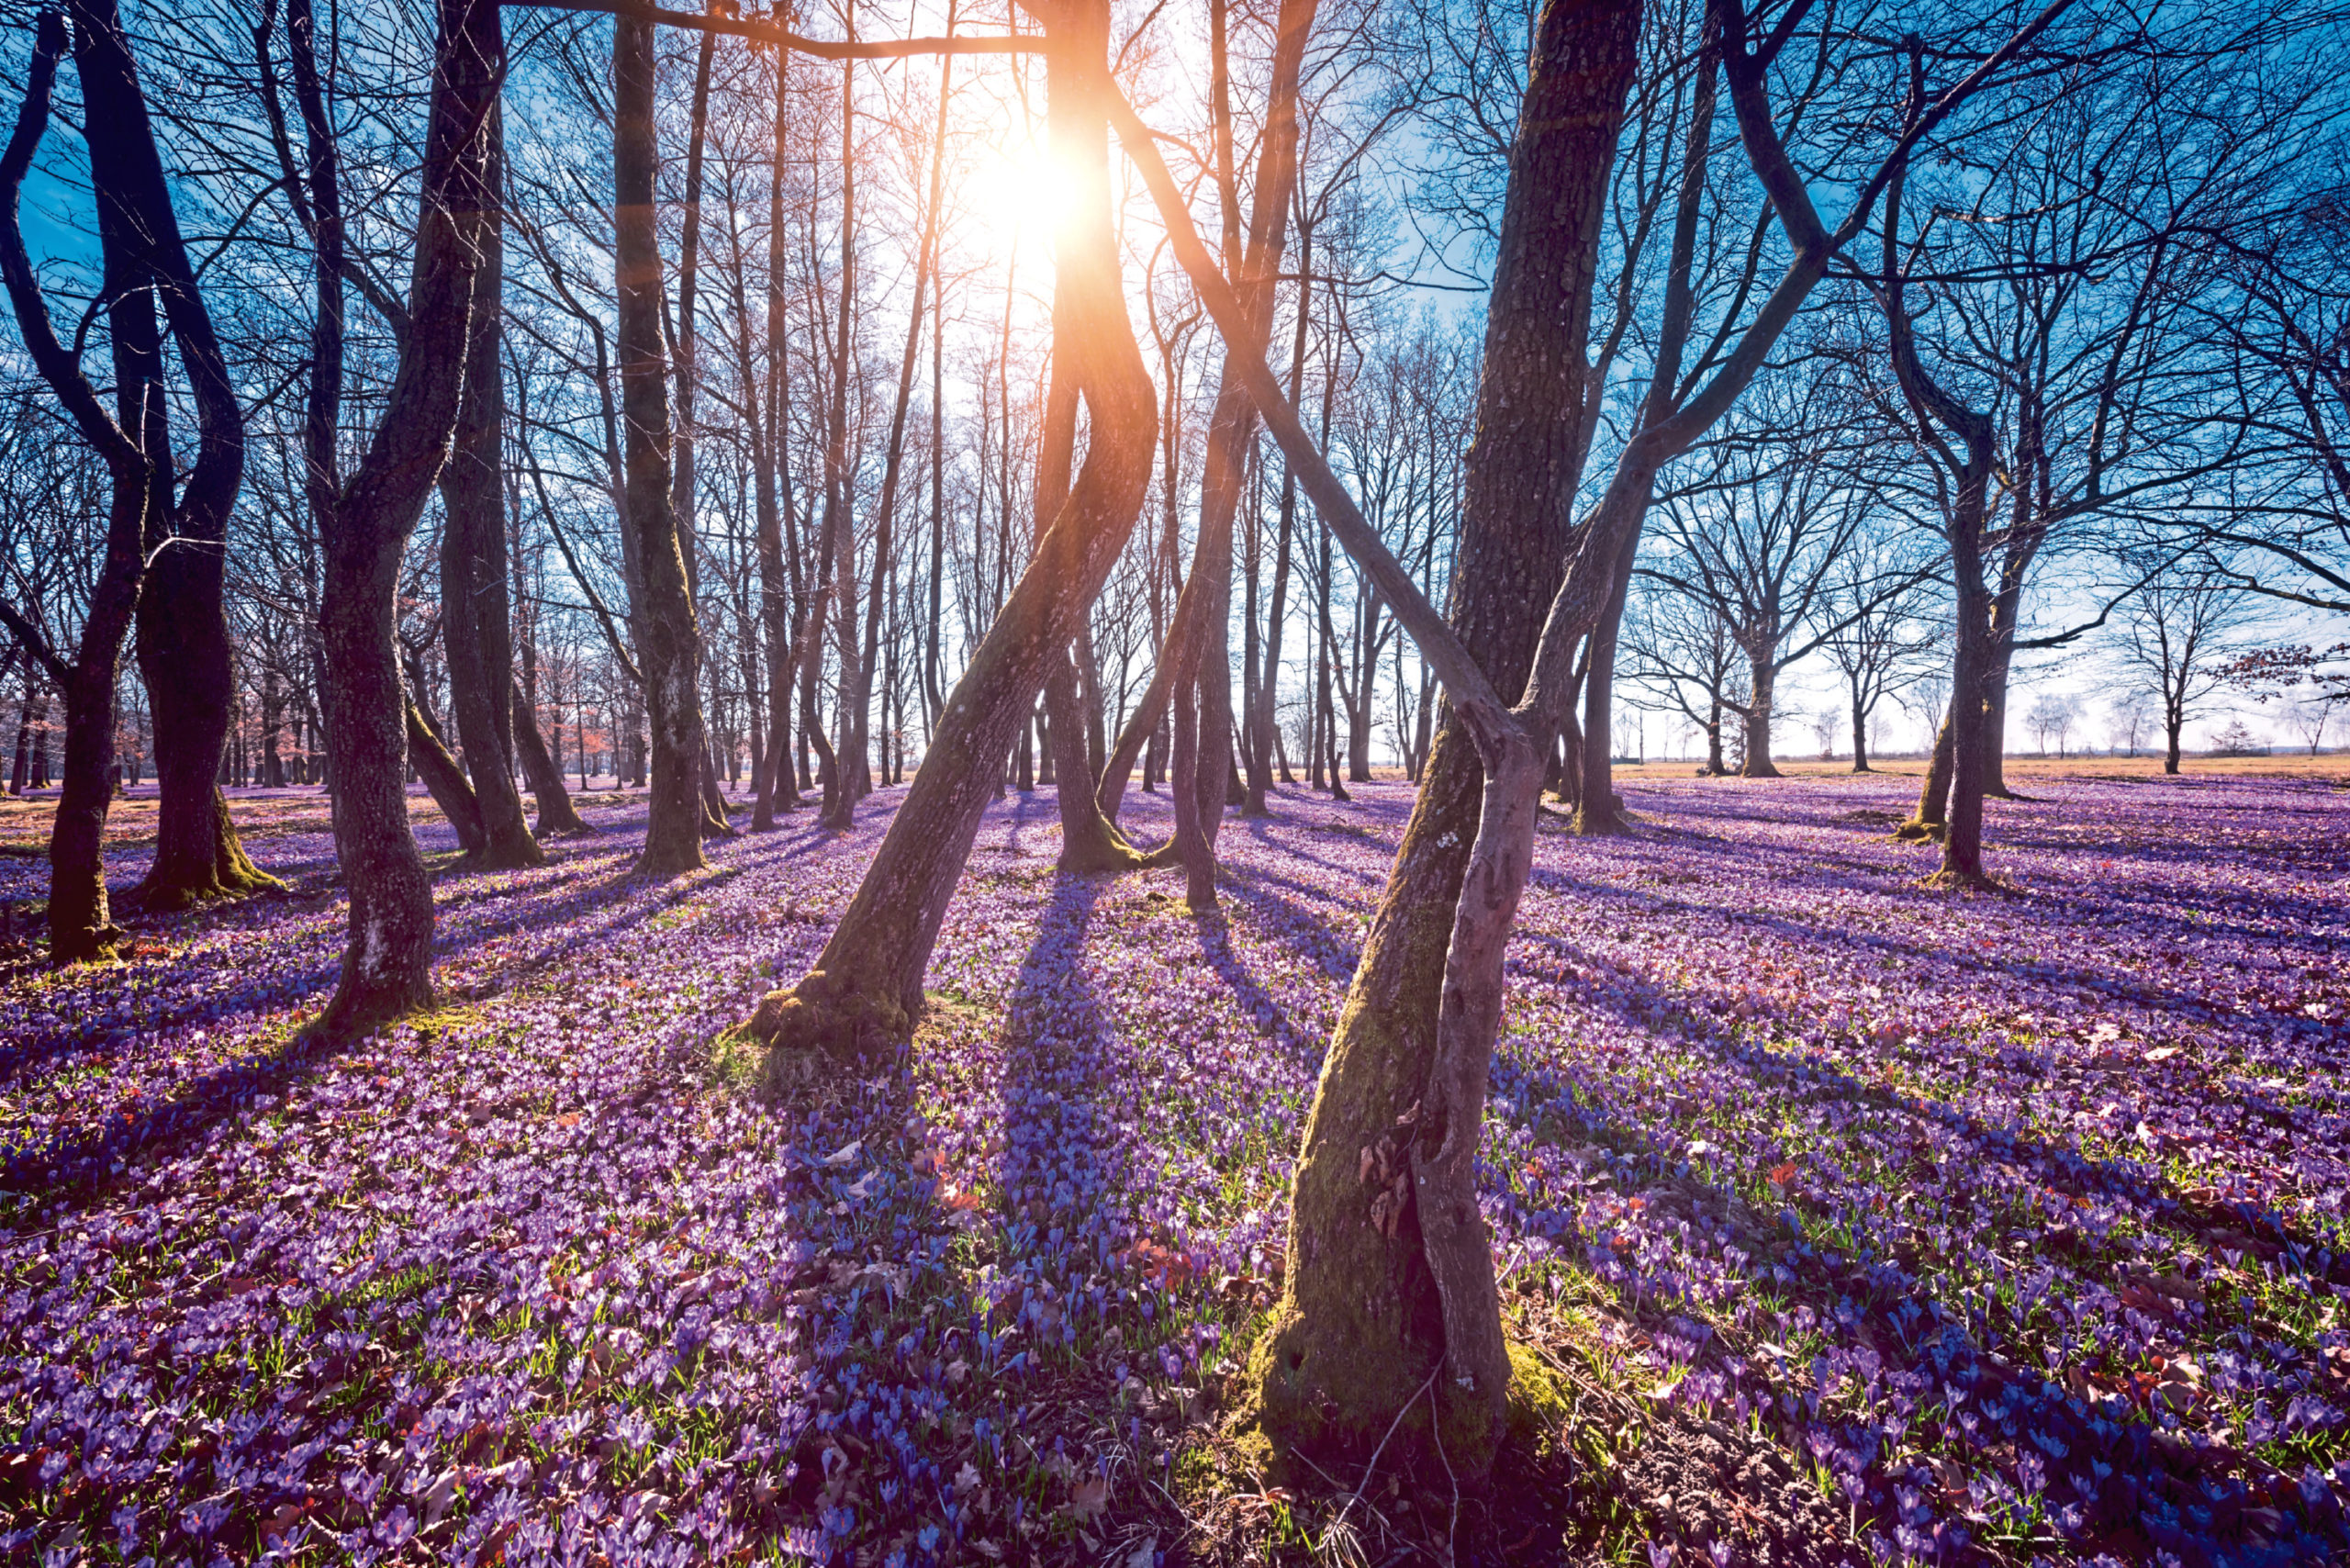 A carpet of violet crocuses is a beautiful sight to behold